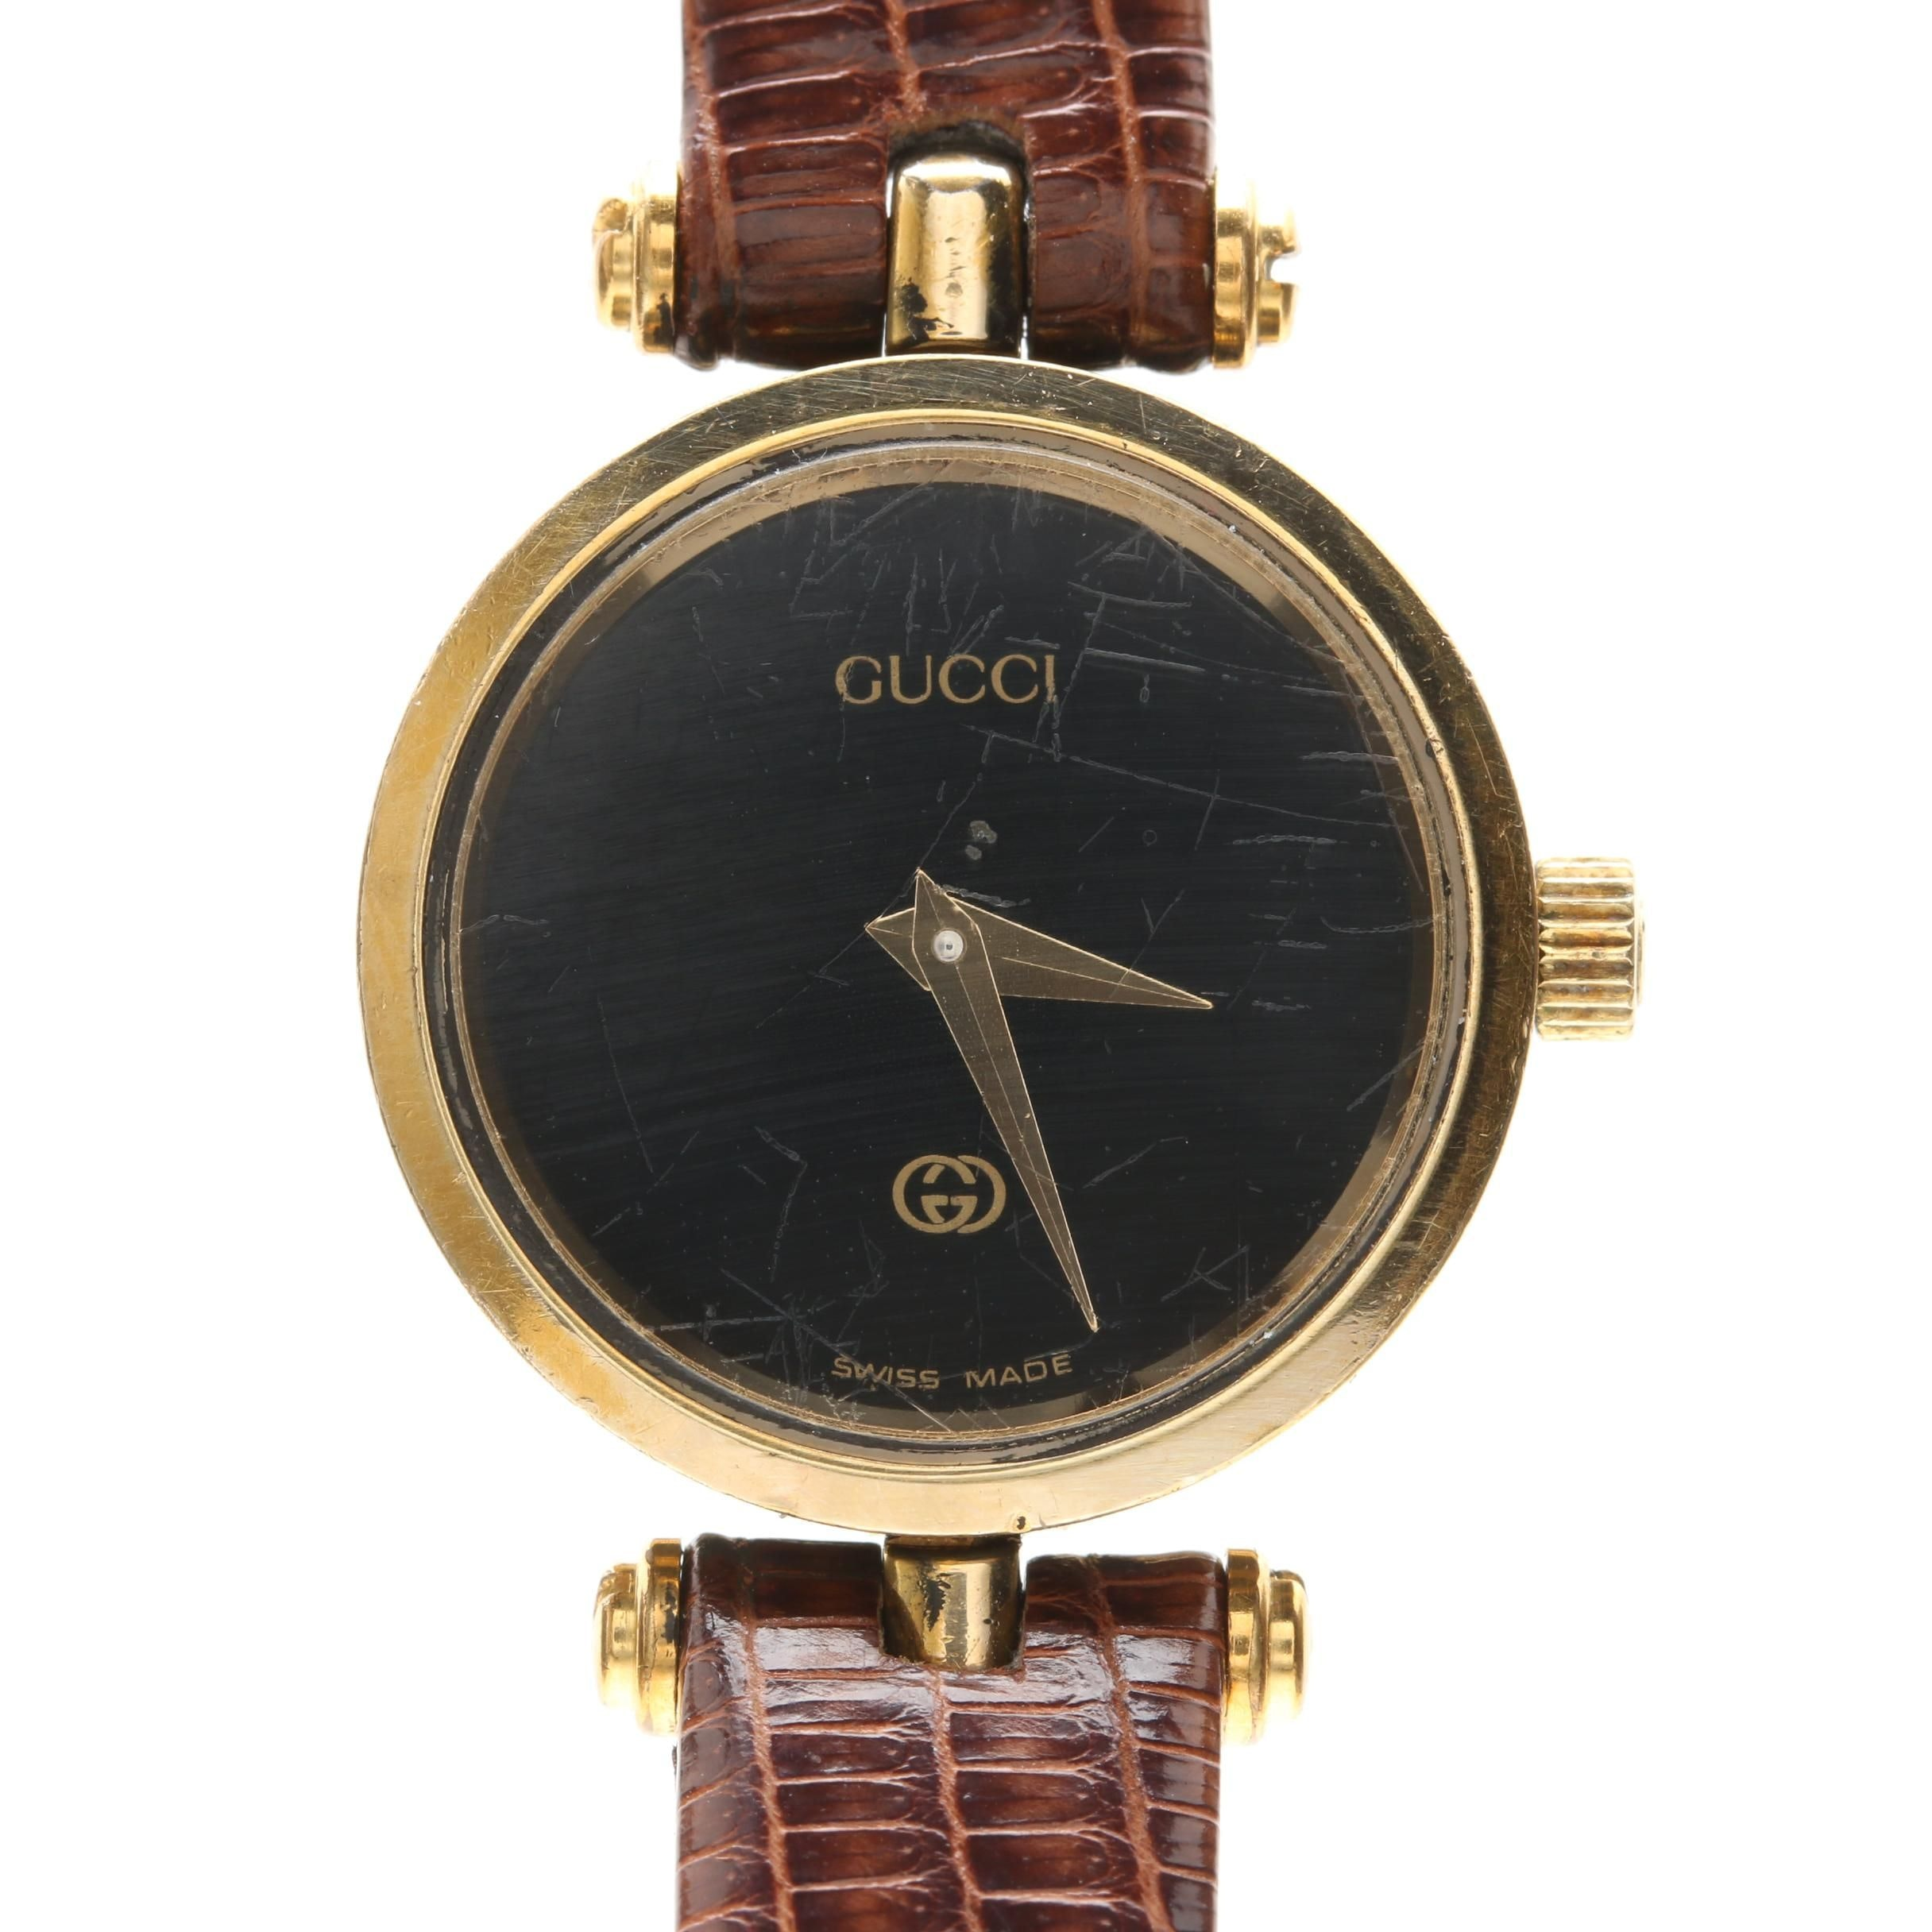 Gucci Gold Plate Enameled Wristwatch